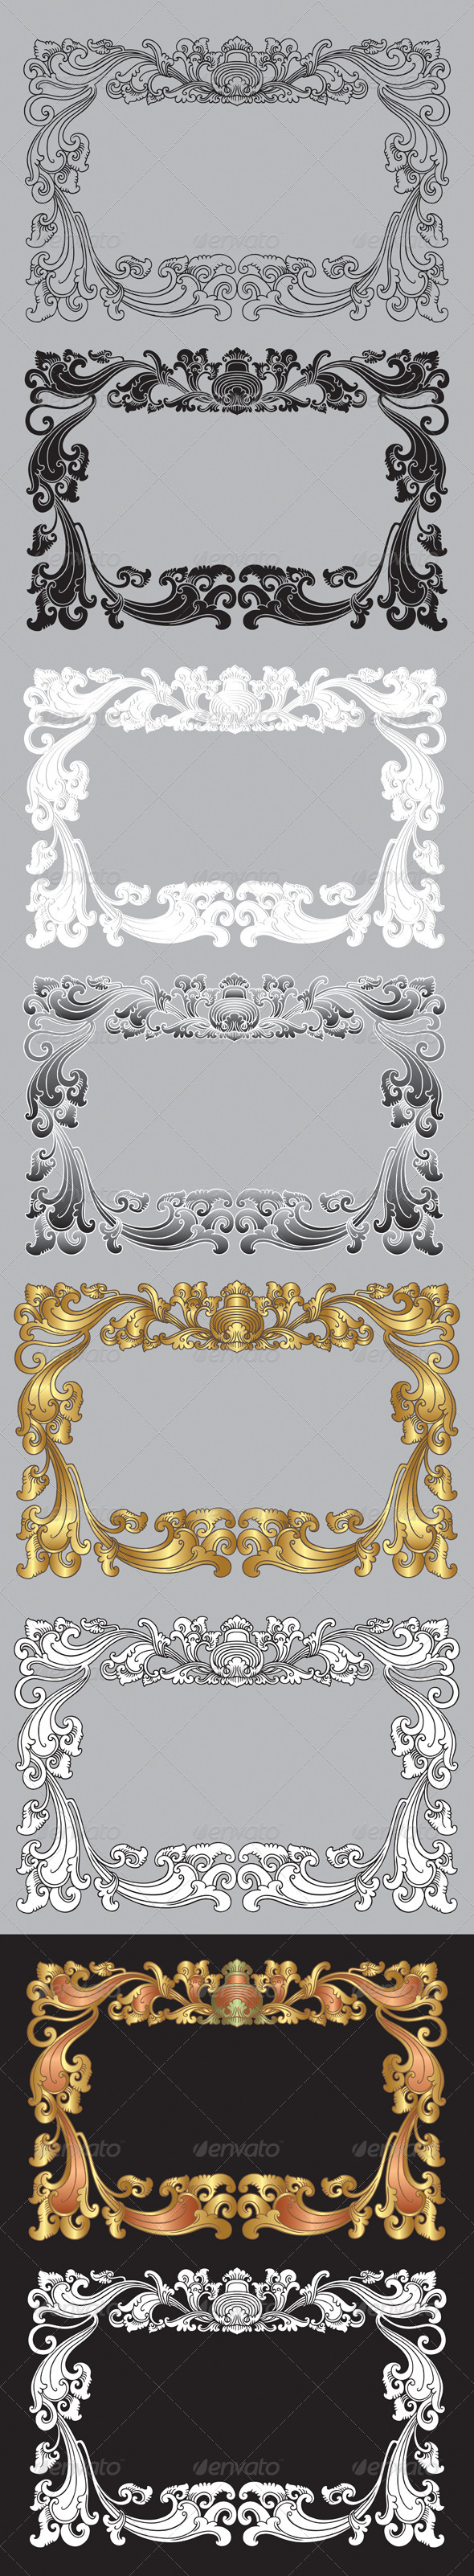 GraphicRiver Balinese Ornament Frame 2 4509369